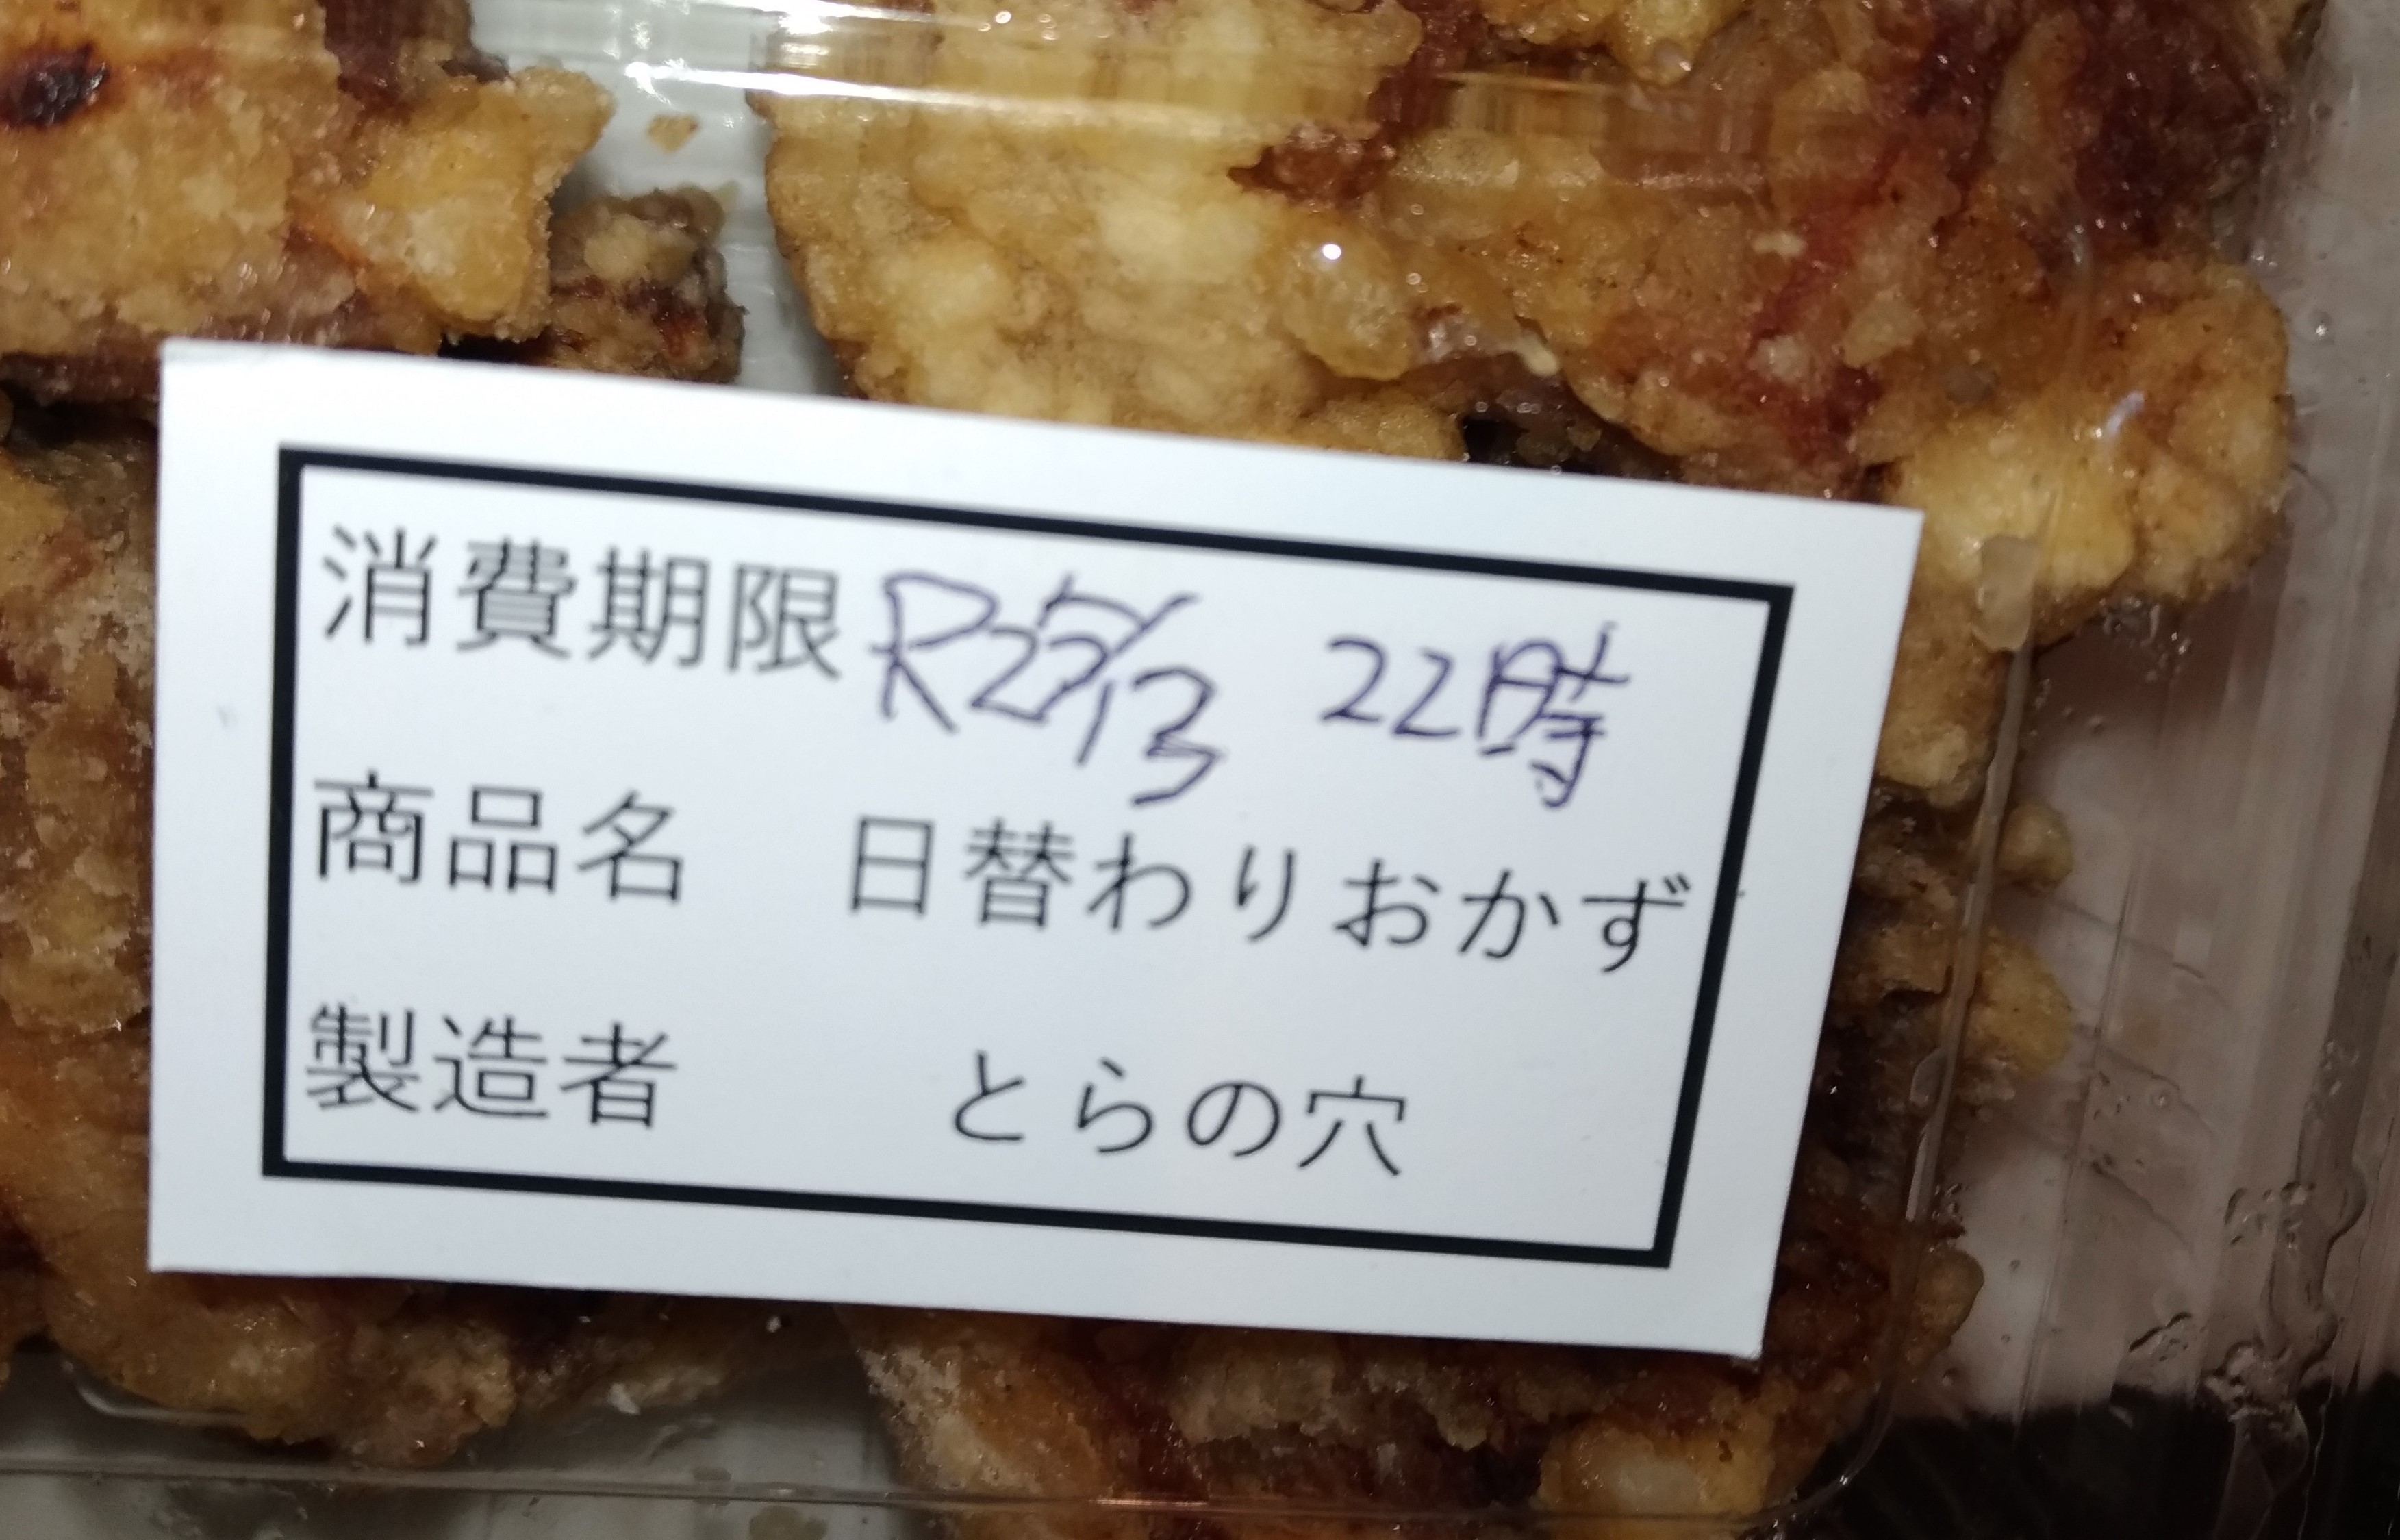 take_out_osaka_karaage_fukushima0513_2.jpg